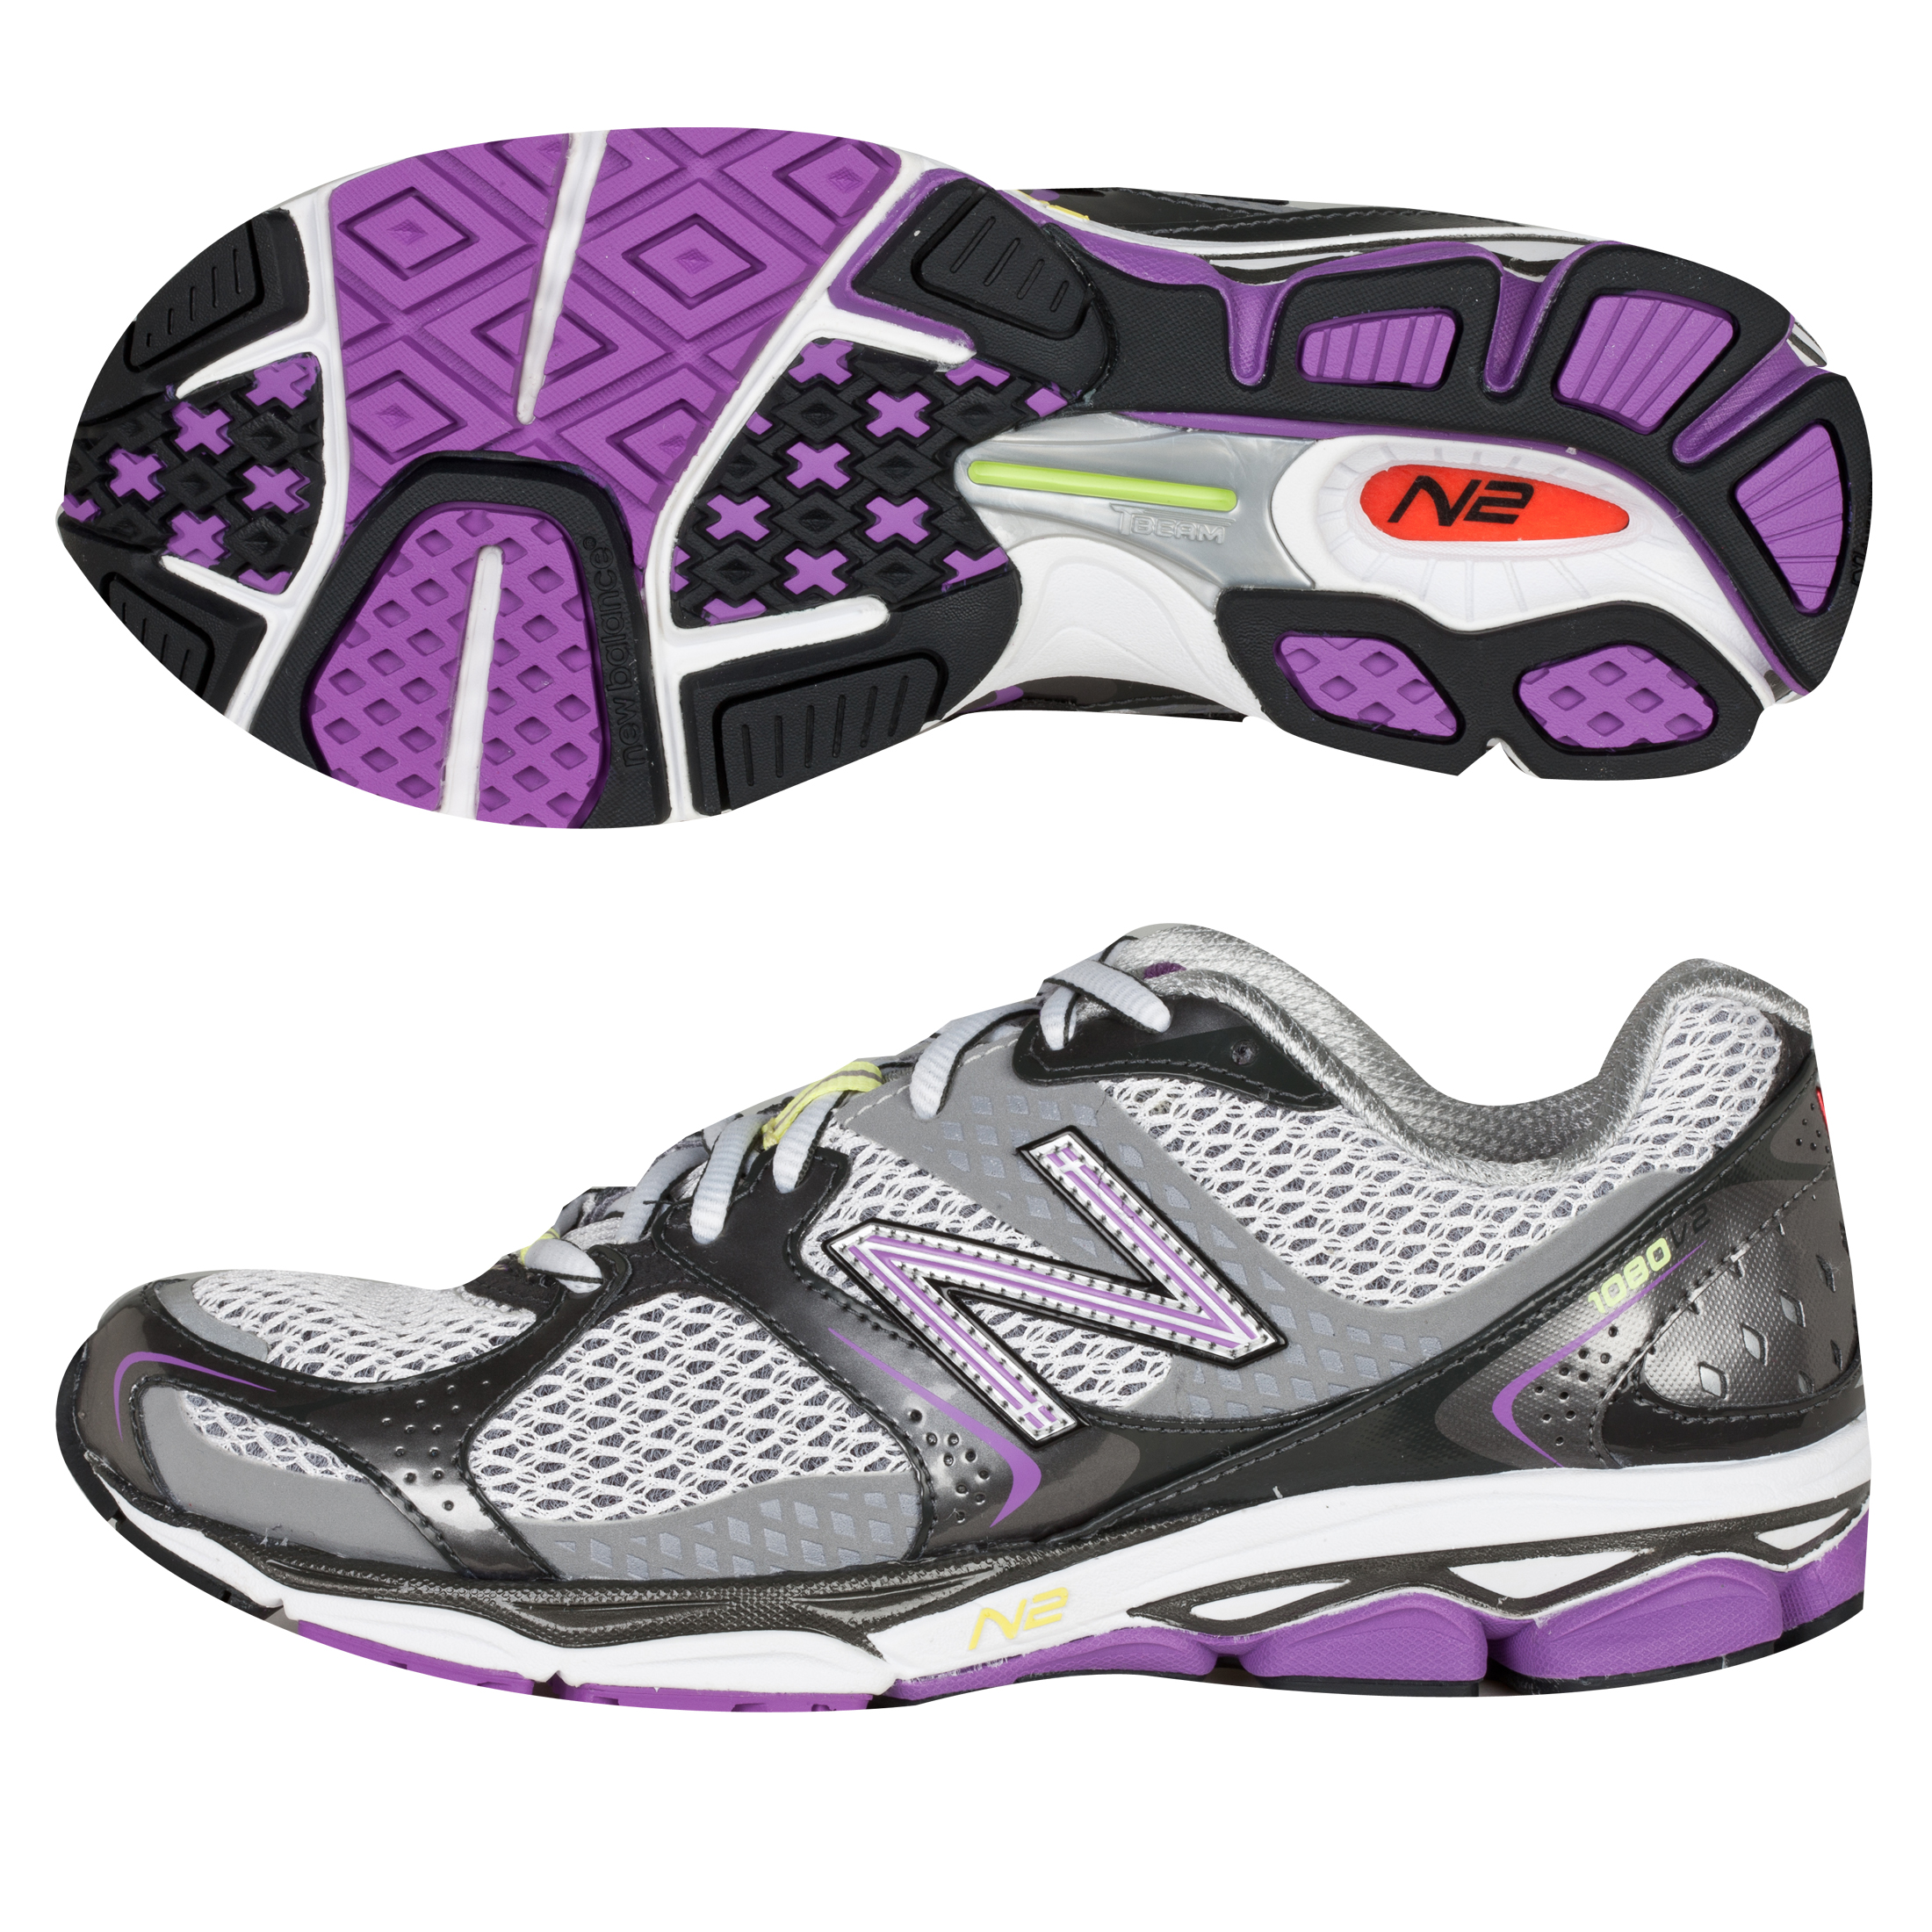 New Balance 1080V2 Running Trainers - Lilac/Silver - Womens